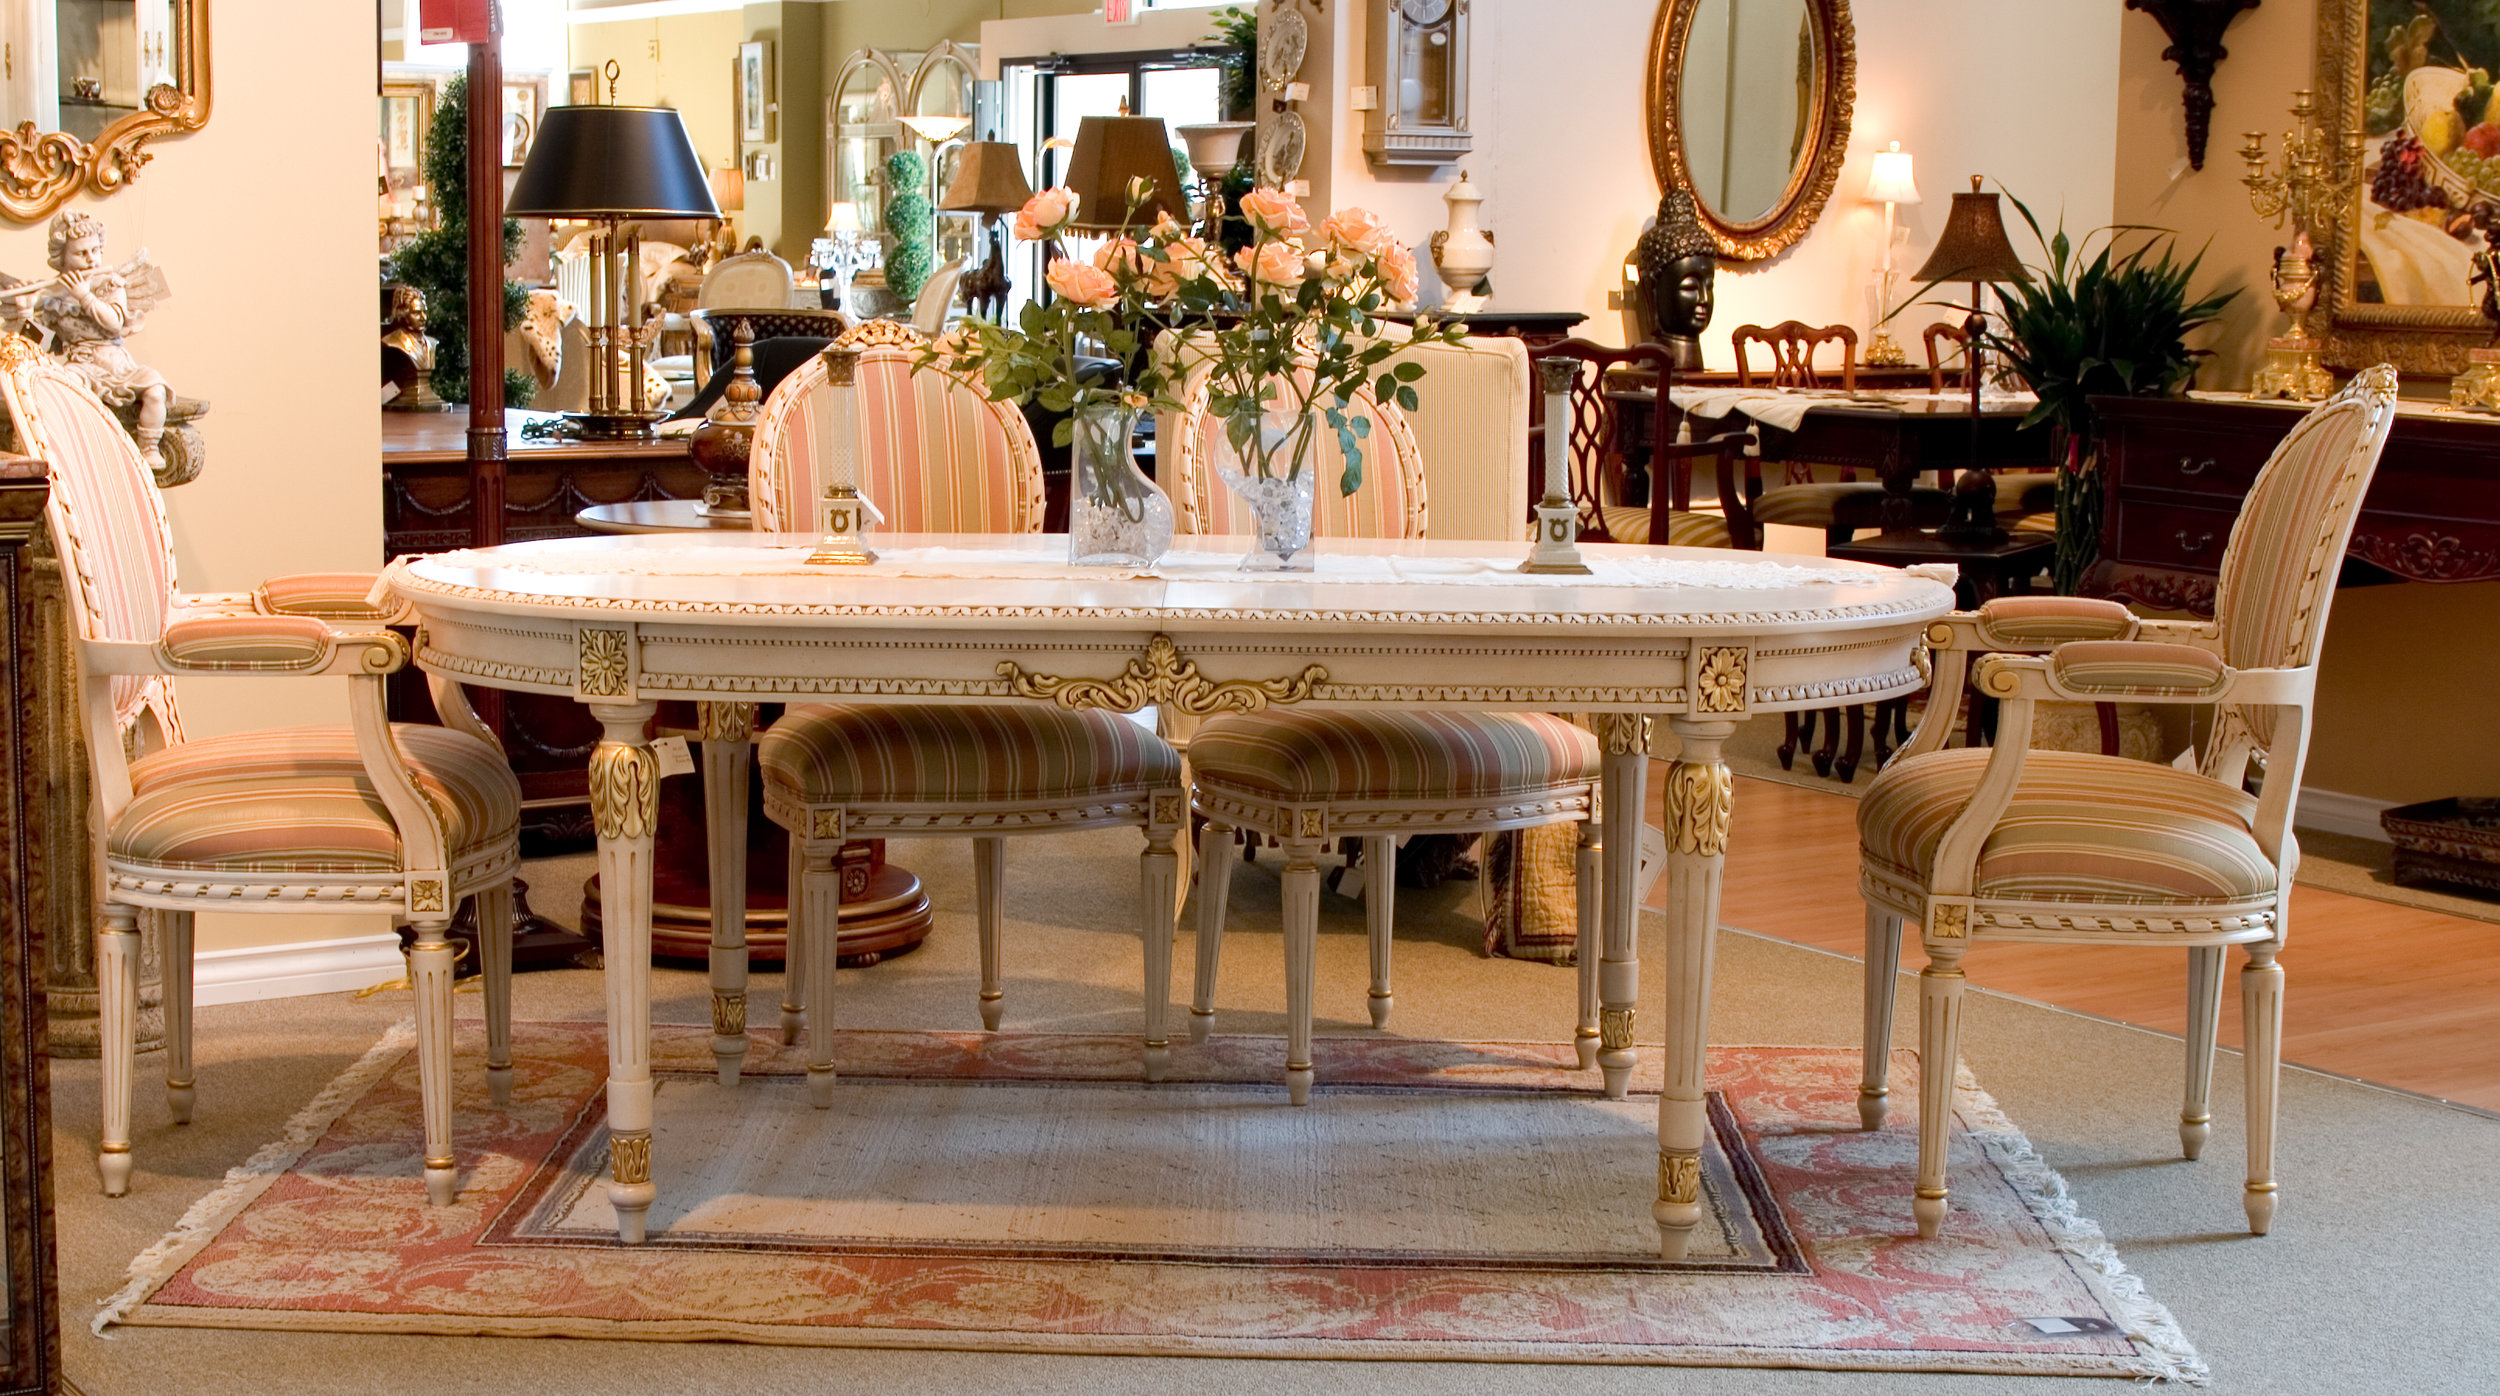 TA 500 LOUIS XVI DINING TABLE.jpg